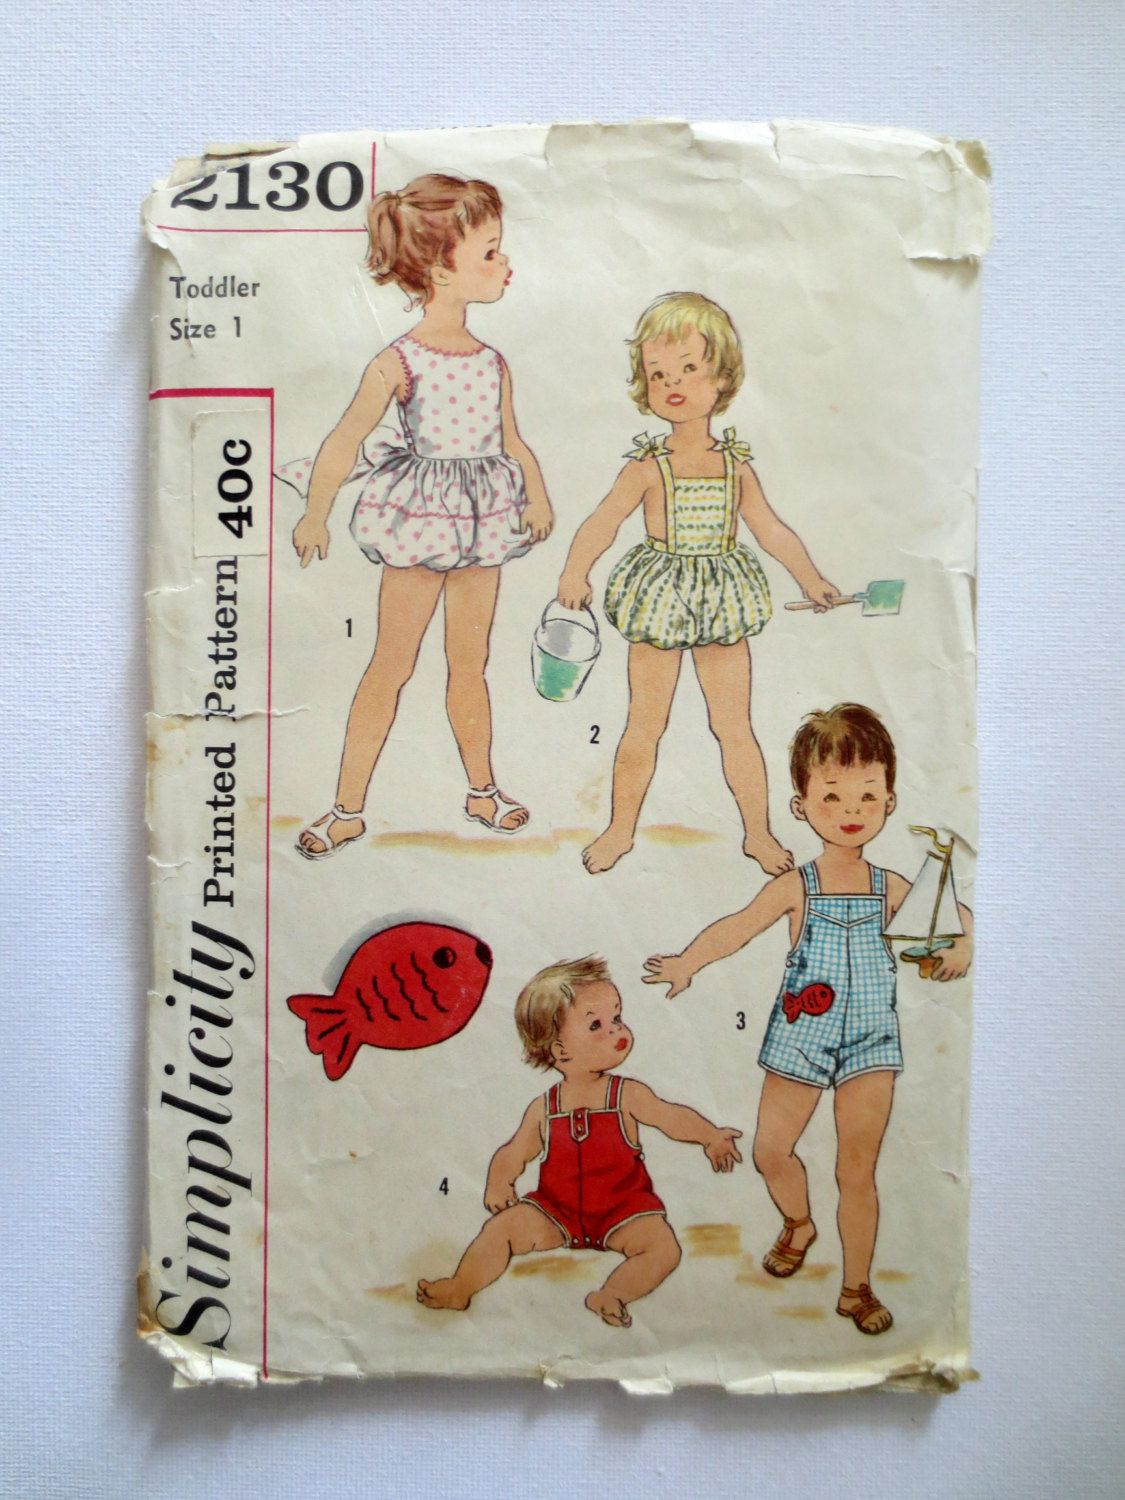 Simplicity 2130 toddlers set of one piece playsuits size 1 simplicity 2130 toddlers set of one piece playsuits size 1 vintage childrens sewing pattern jeuxipadfo Choice Image